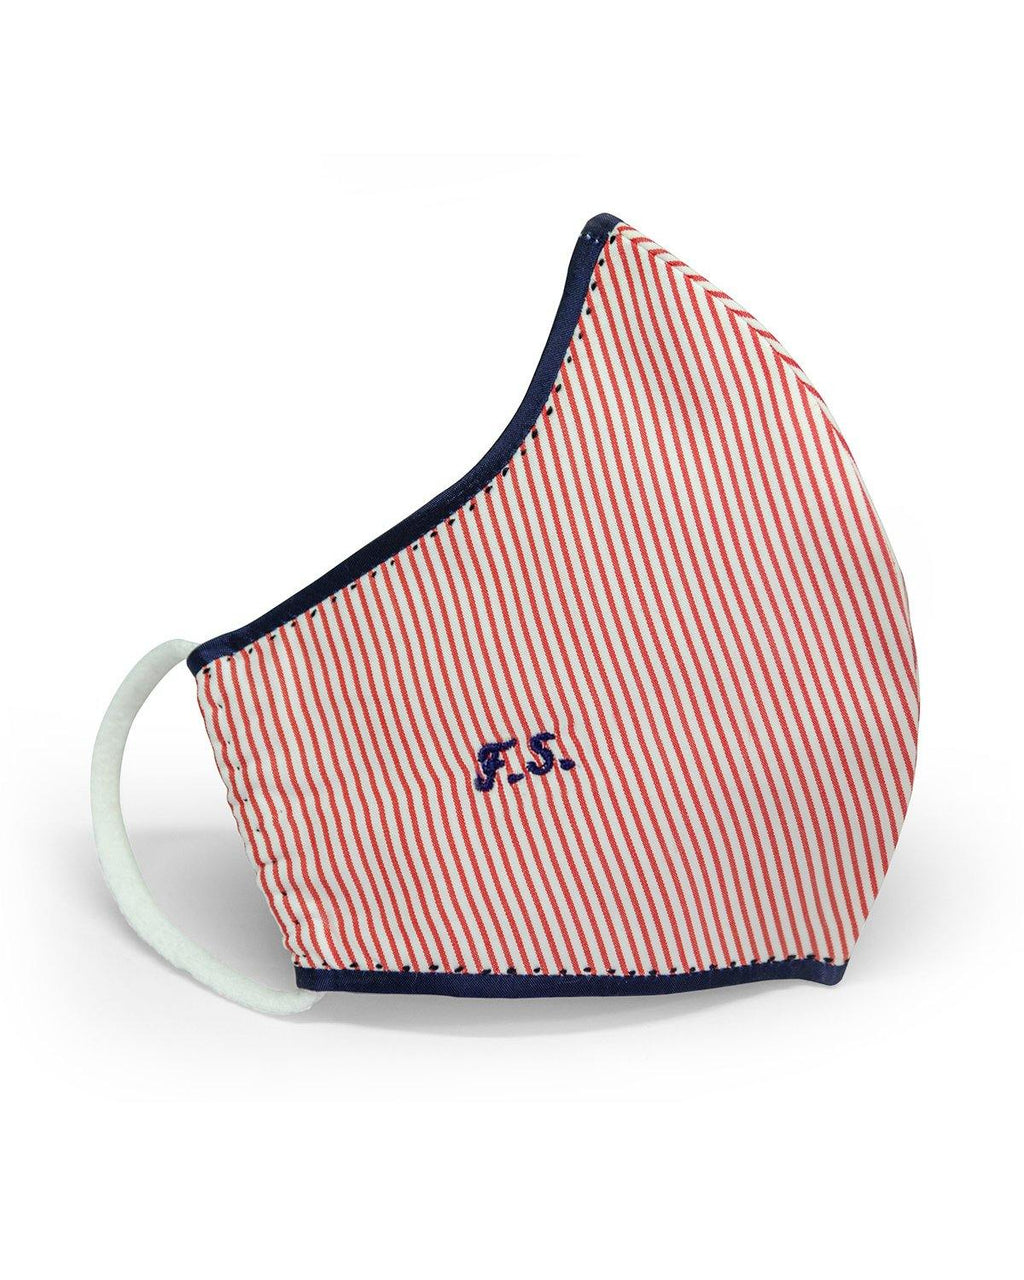 Tailored Face Mask – Red Stripes - FRANCESCO GUIDA